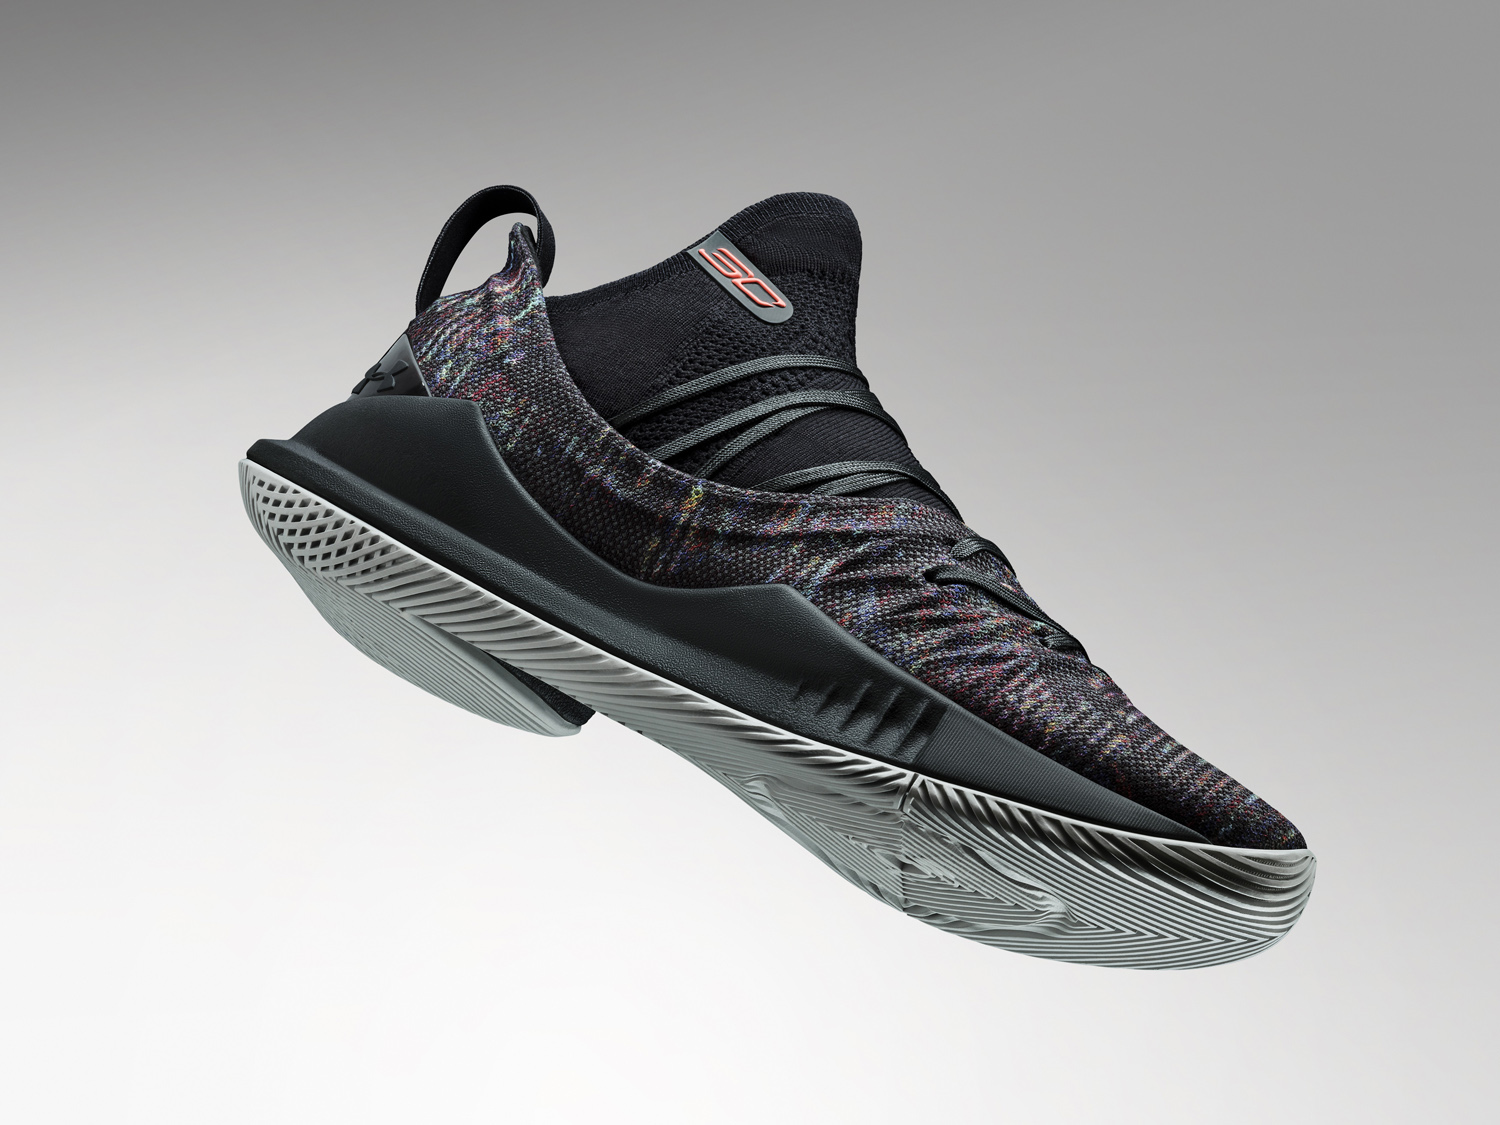 newest 7d031 943f1 Tokyo Nights Inspire the Latest UA Curry 5 Colorway ...